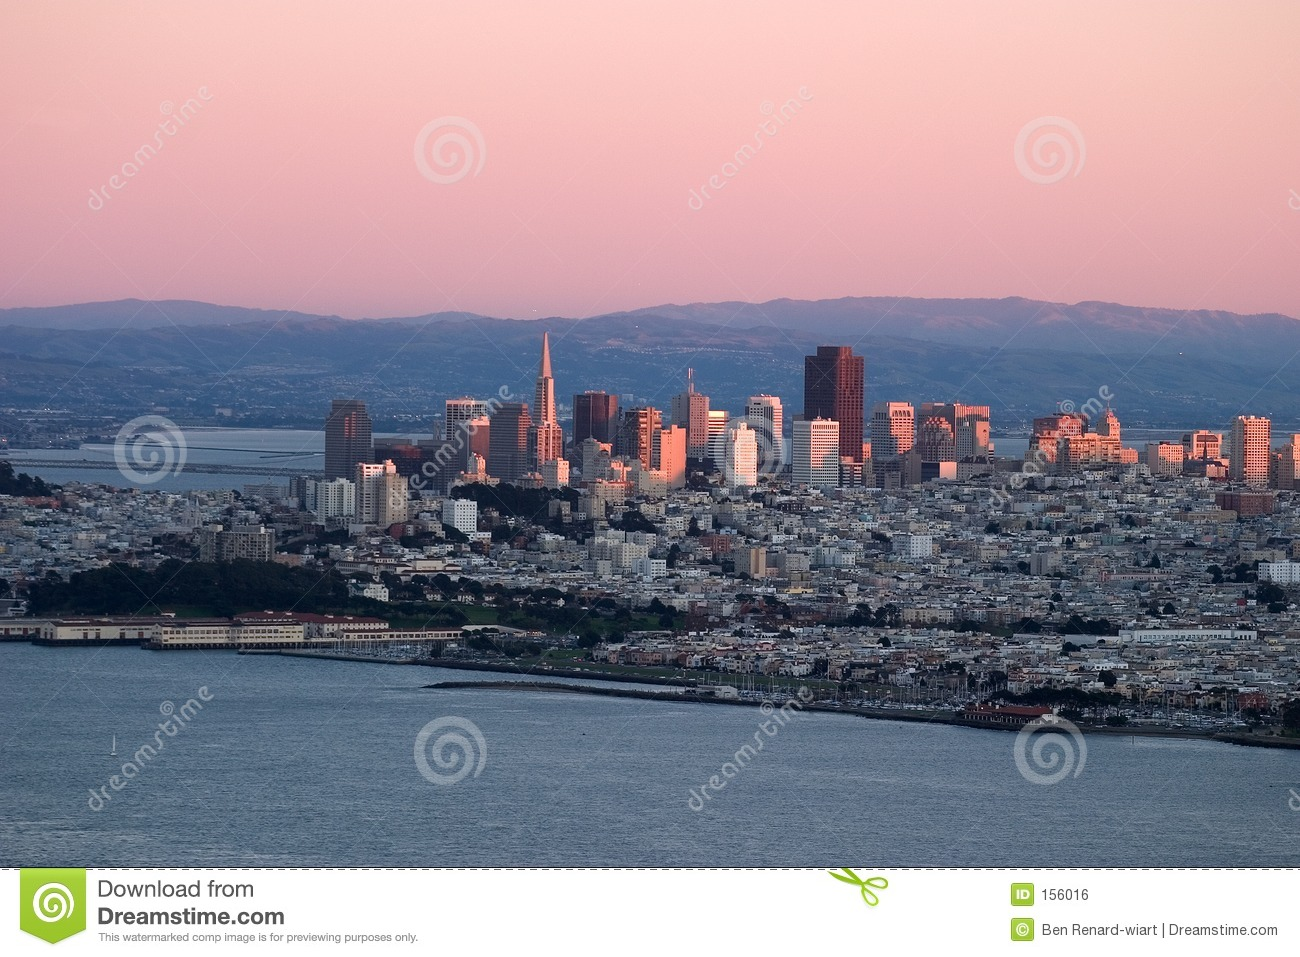 Sunset over San Francisco with pink colors.